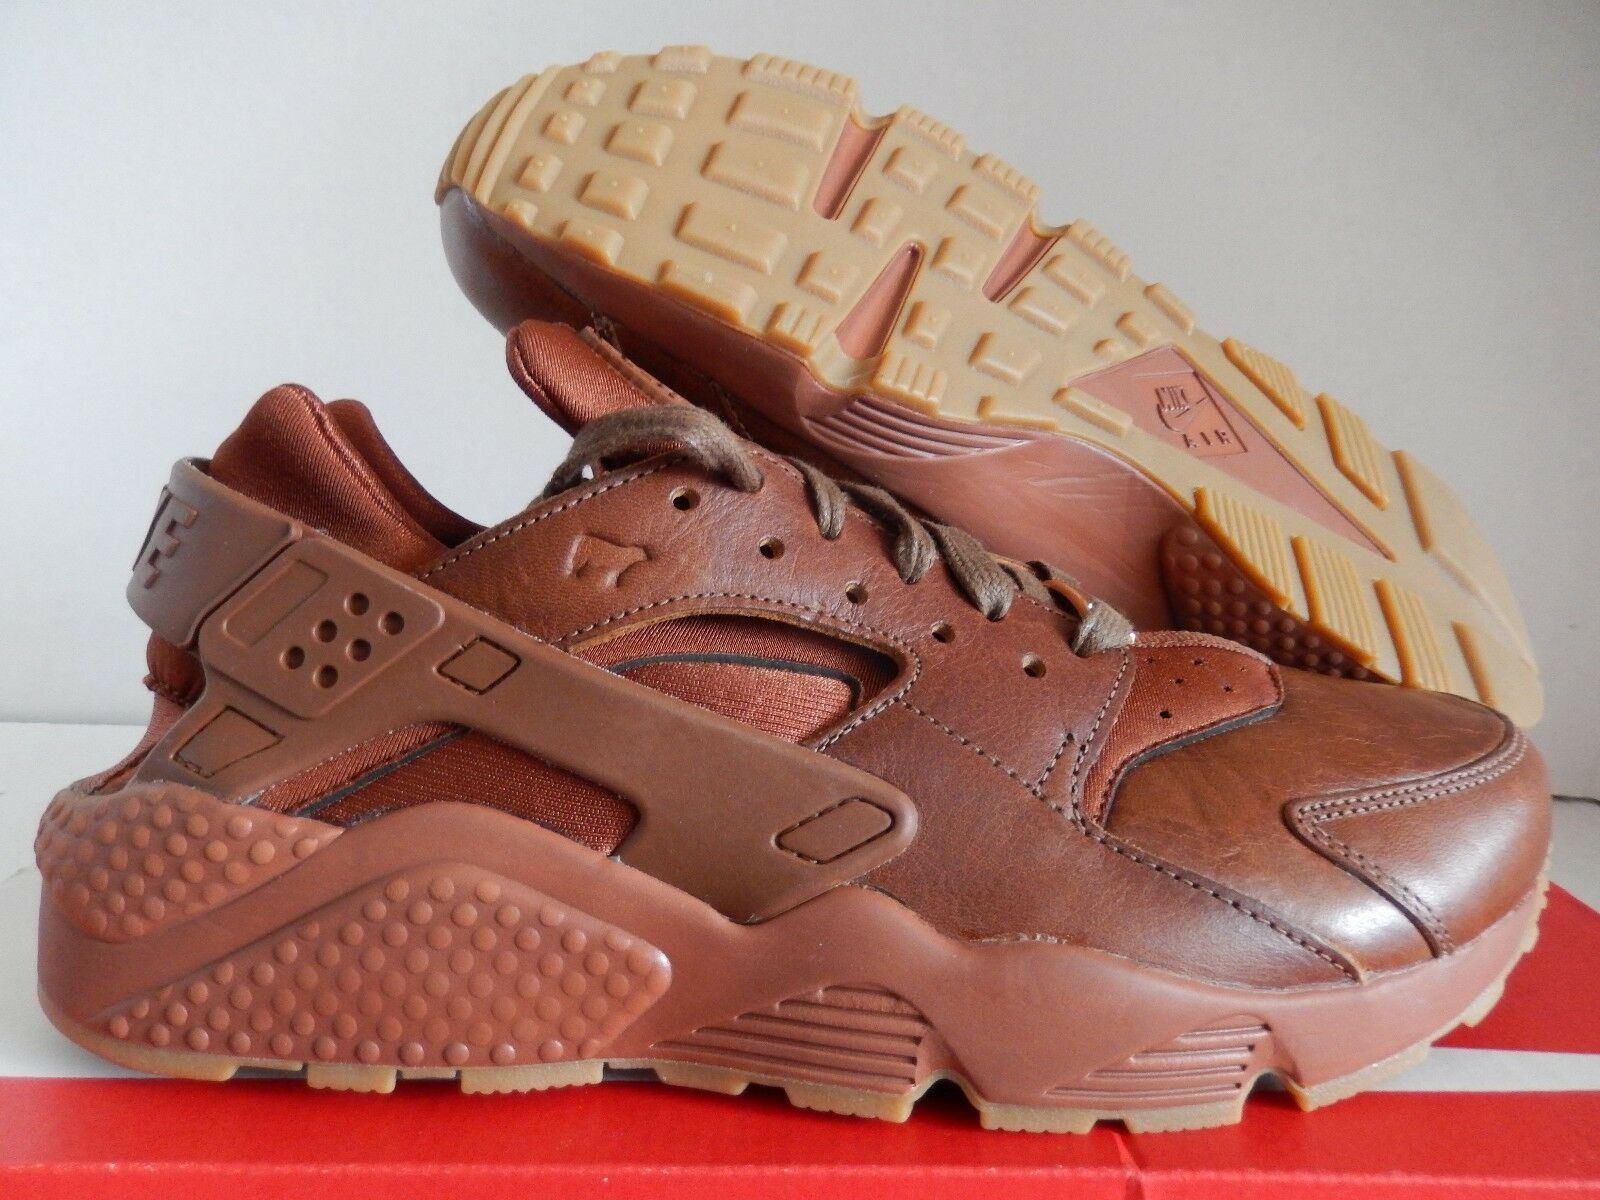 NIKE AIR HUARACHE ID WILL PREMIUM LEATHER BROWN SZ 9 [918438-991]